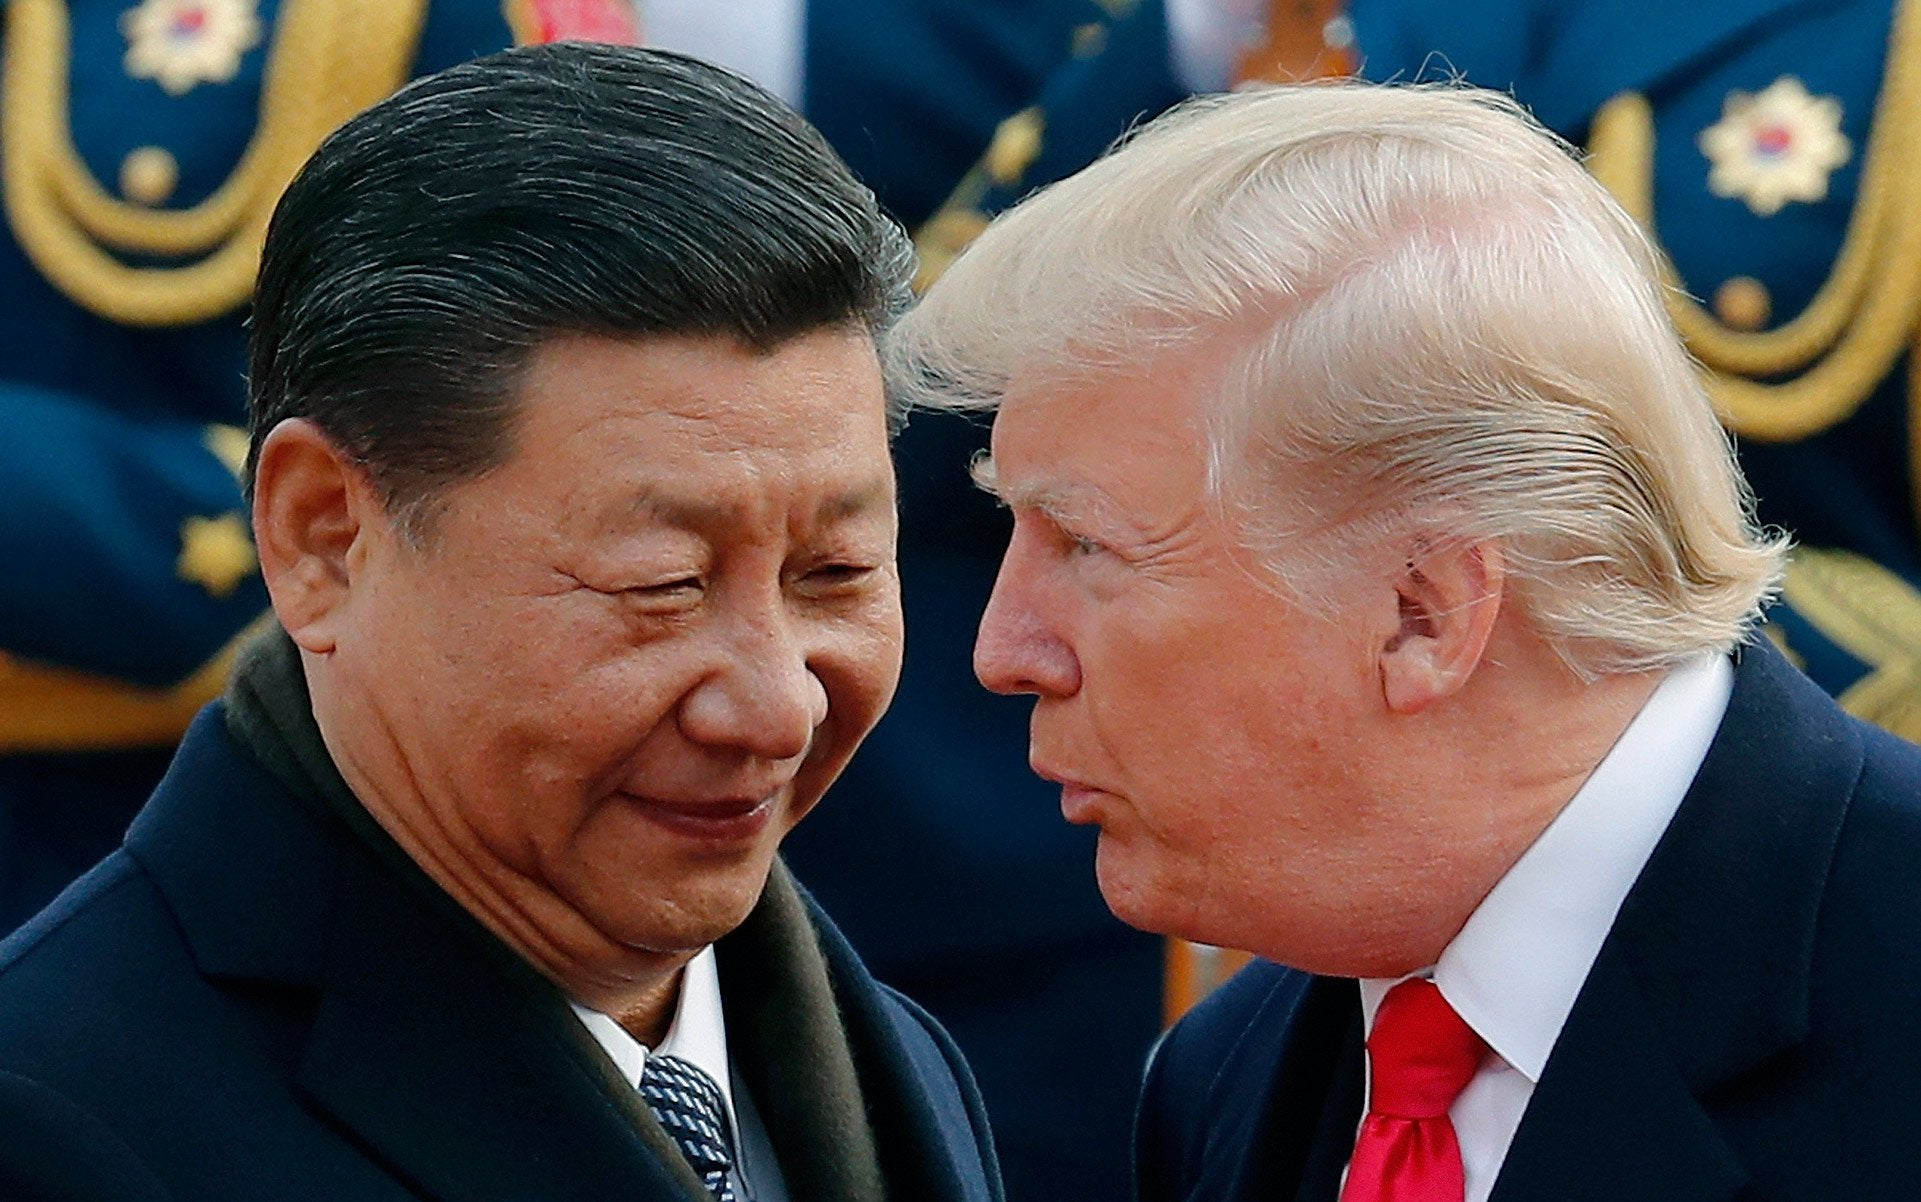 Trump's China Tariffs Leading to Shoddier, Pricier Vape Carts: partly assembled consumers goods, including vaporizer cartridges, glass jars w/ plastic lids, & preroll tins saw a 10% tariff added to their cost on Sept. 24, 2018. Then on May 1, 2019... Trump administration bumped that up to 25%.